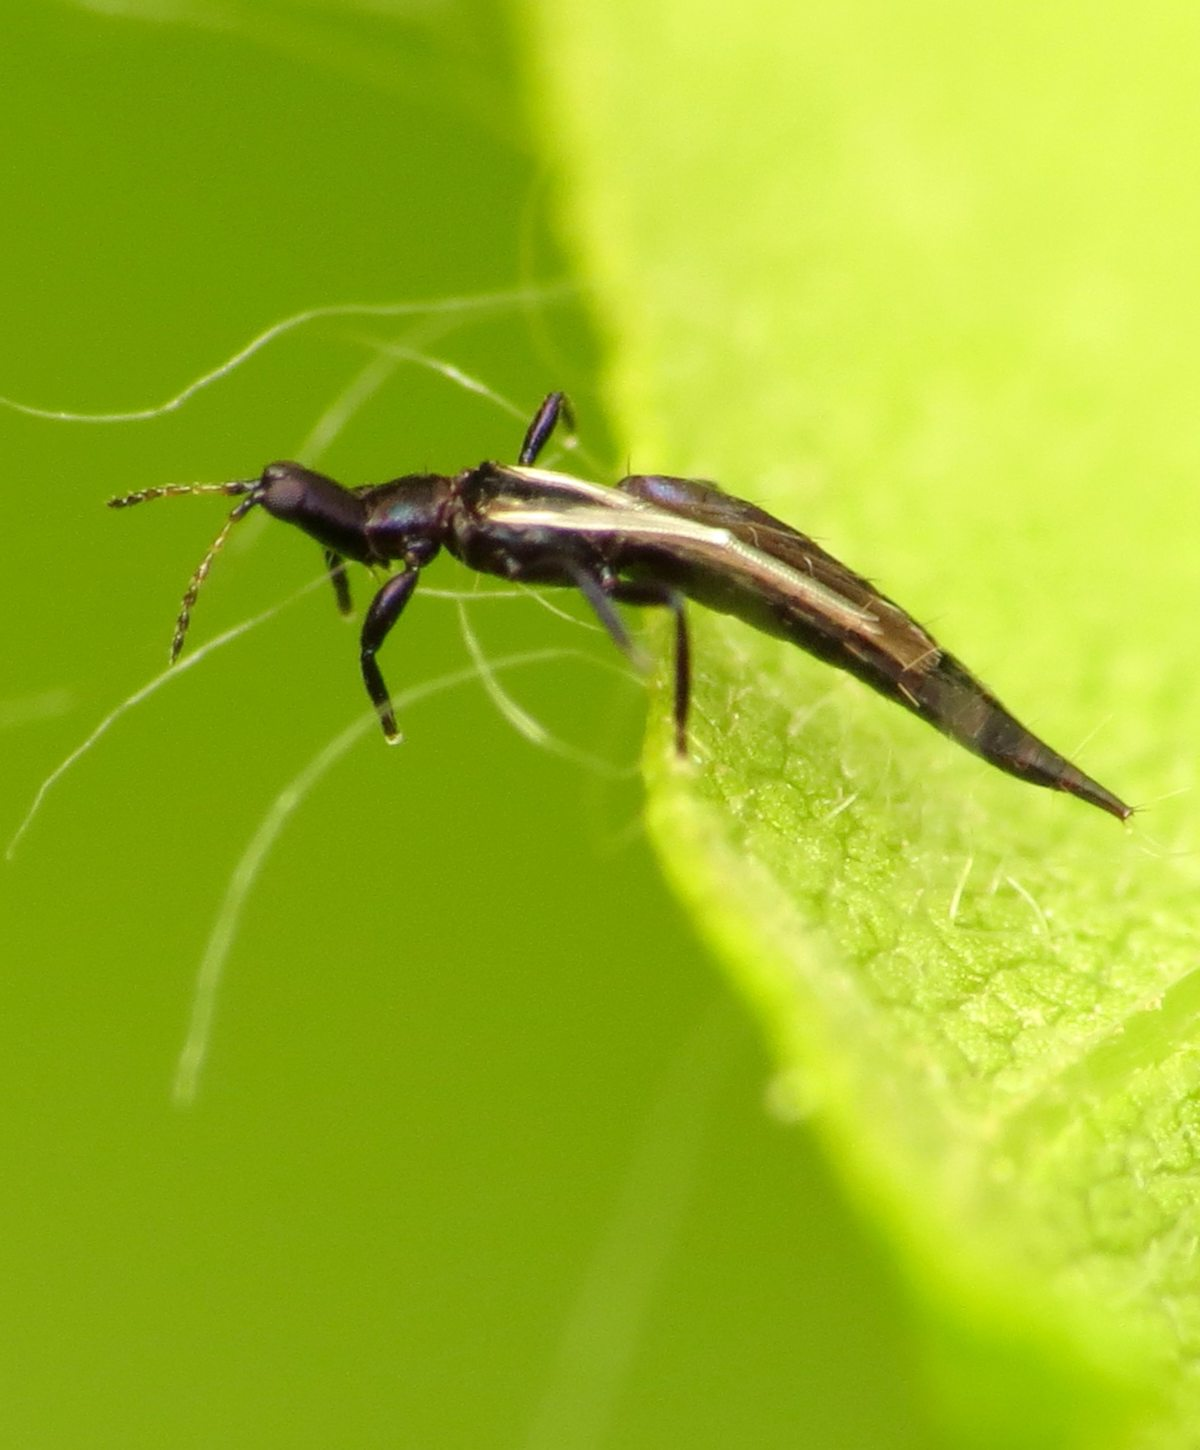 The different types of thrips include predators, pests, and recycler thrips